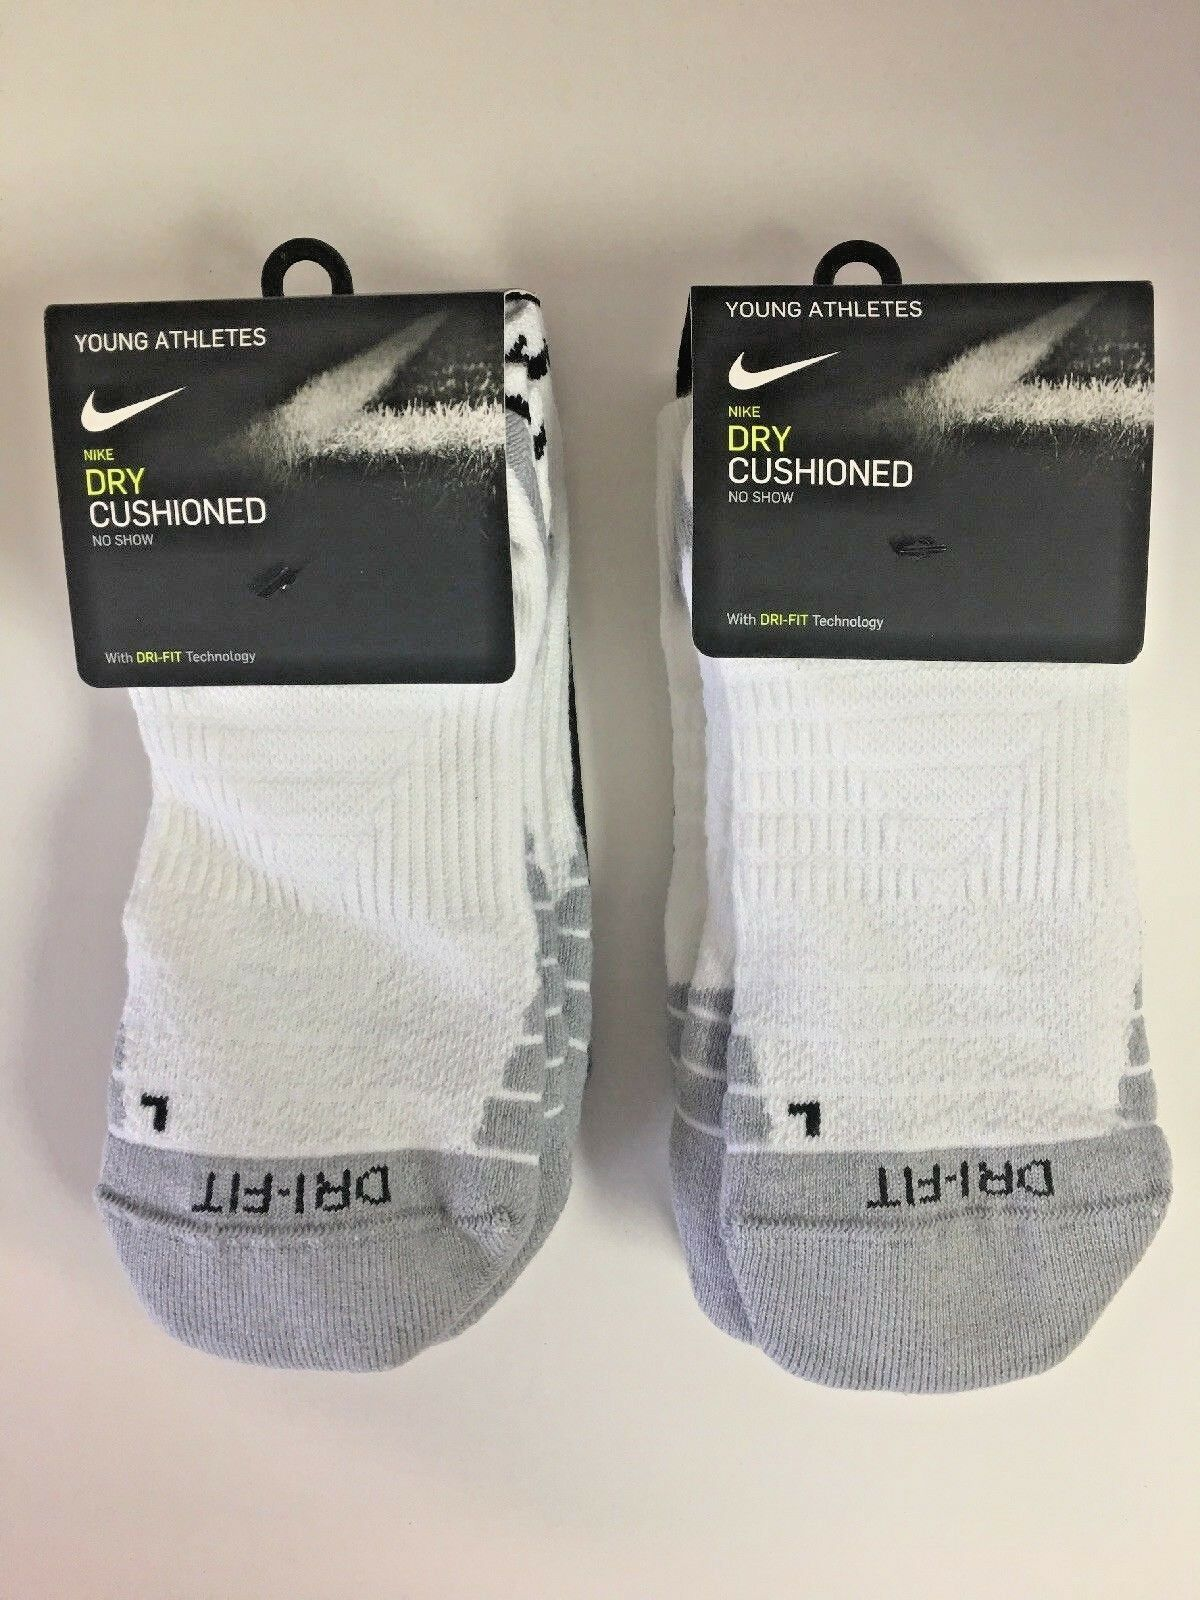 NIKE DRI FIT CUSHIONED SOCKS Young Athlete 5y-7y Medium No Show, 2 pack 6 pairs